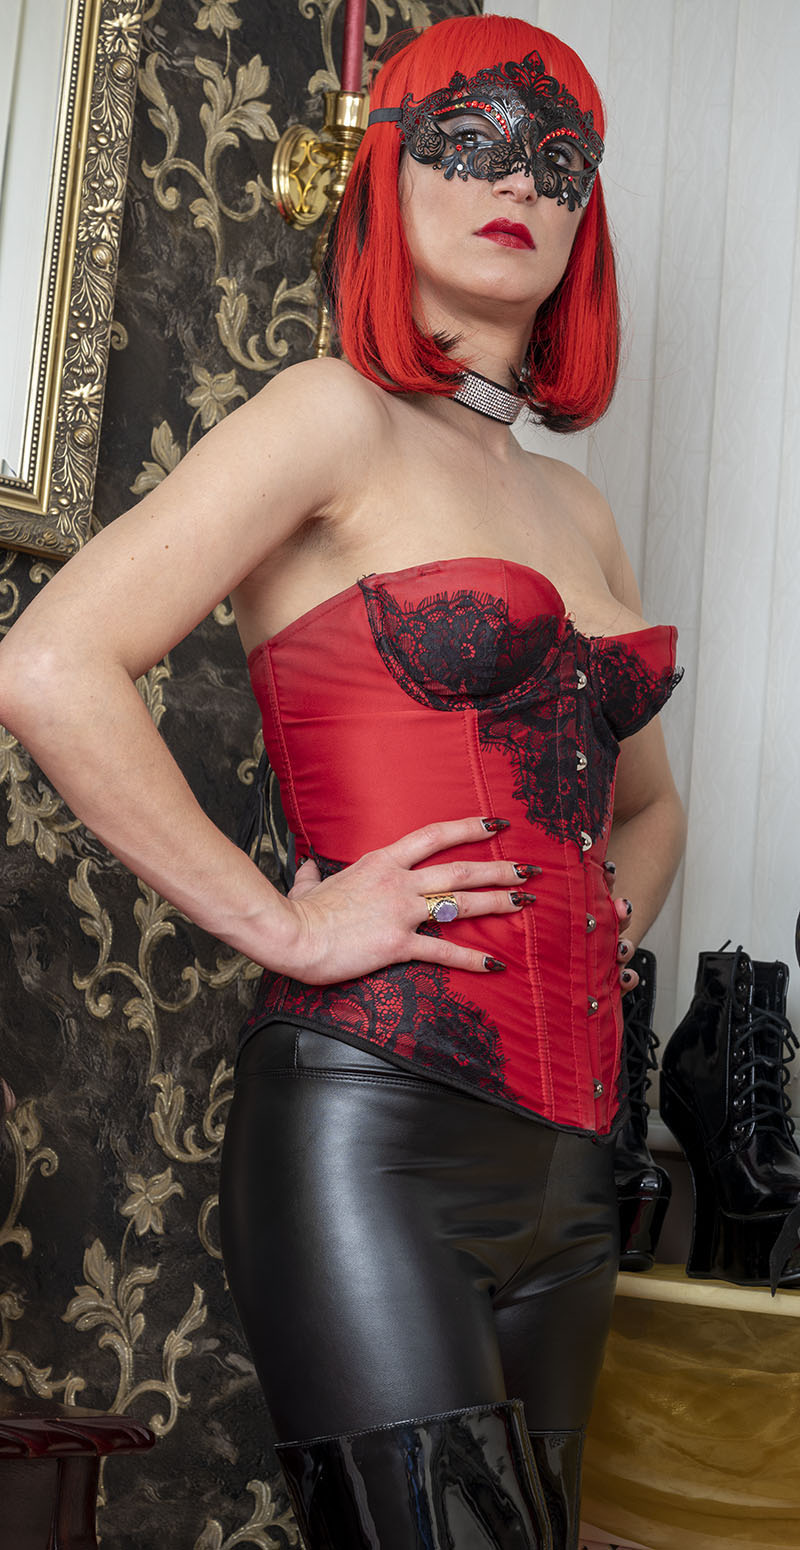 west-midlands-mistress_2384